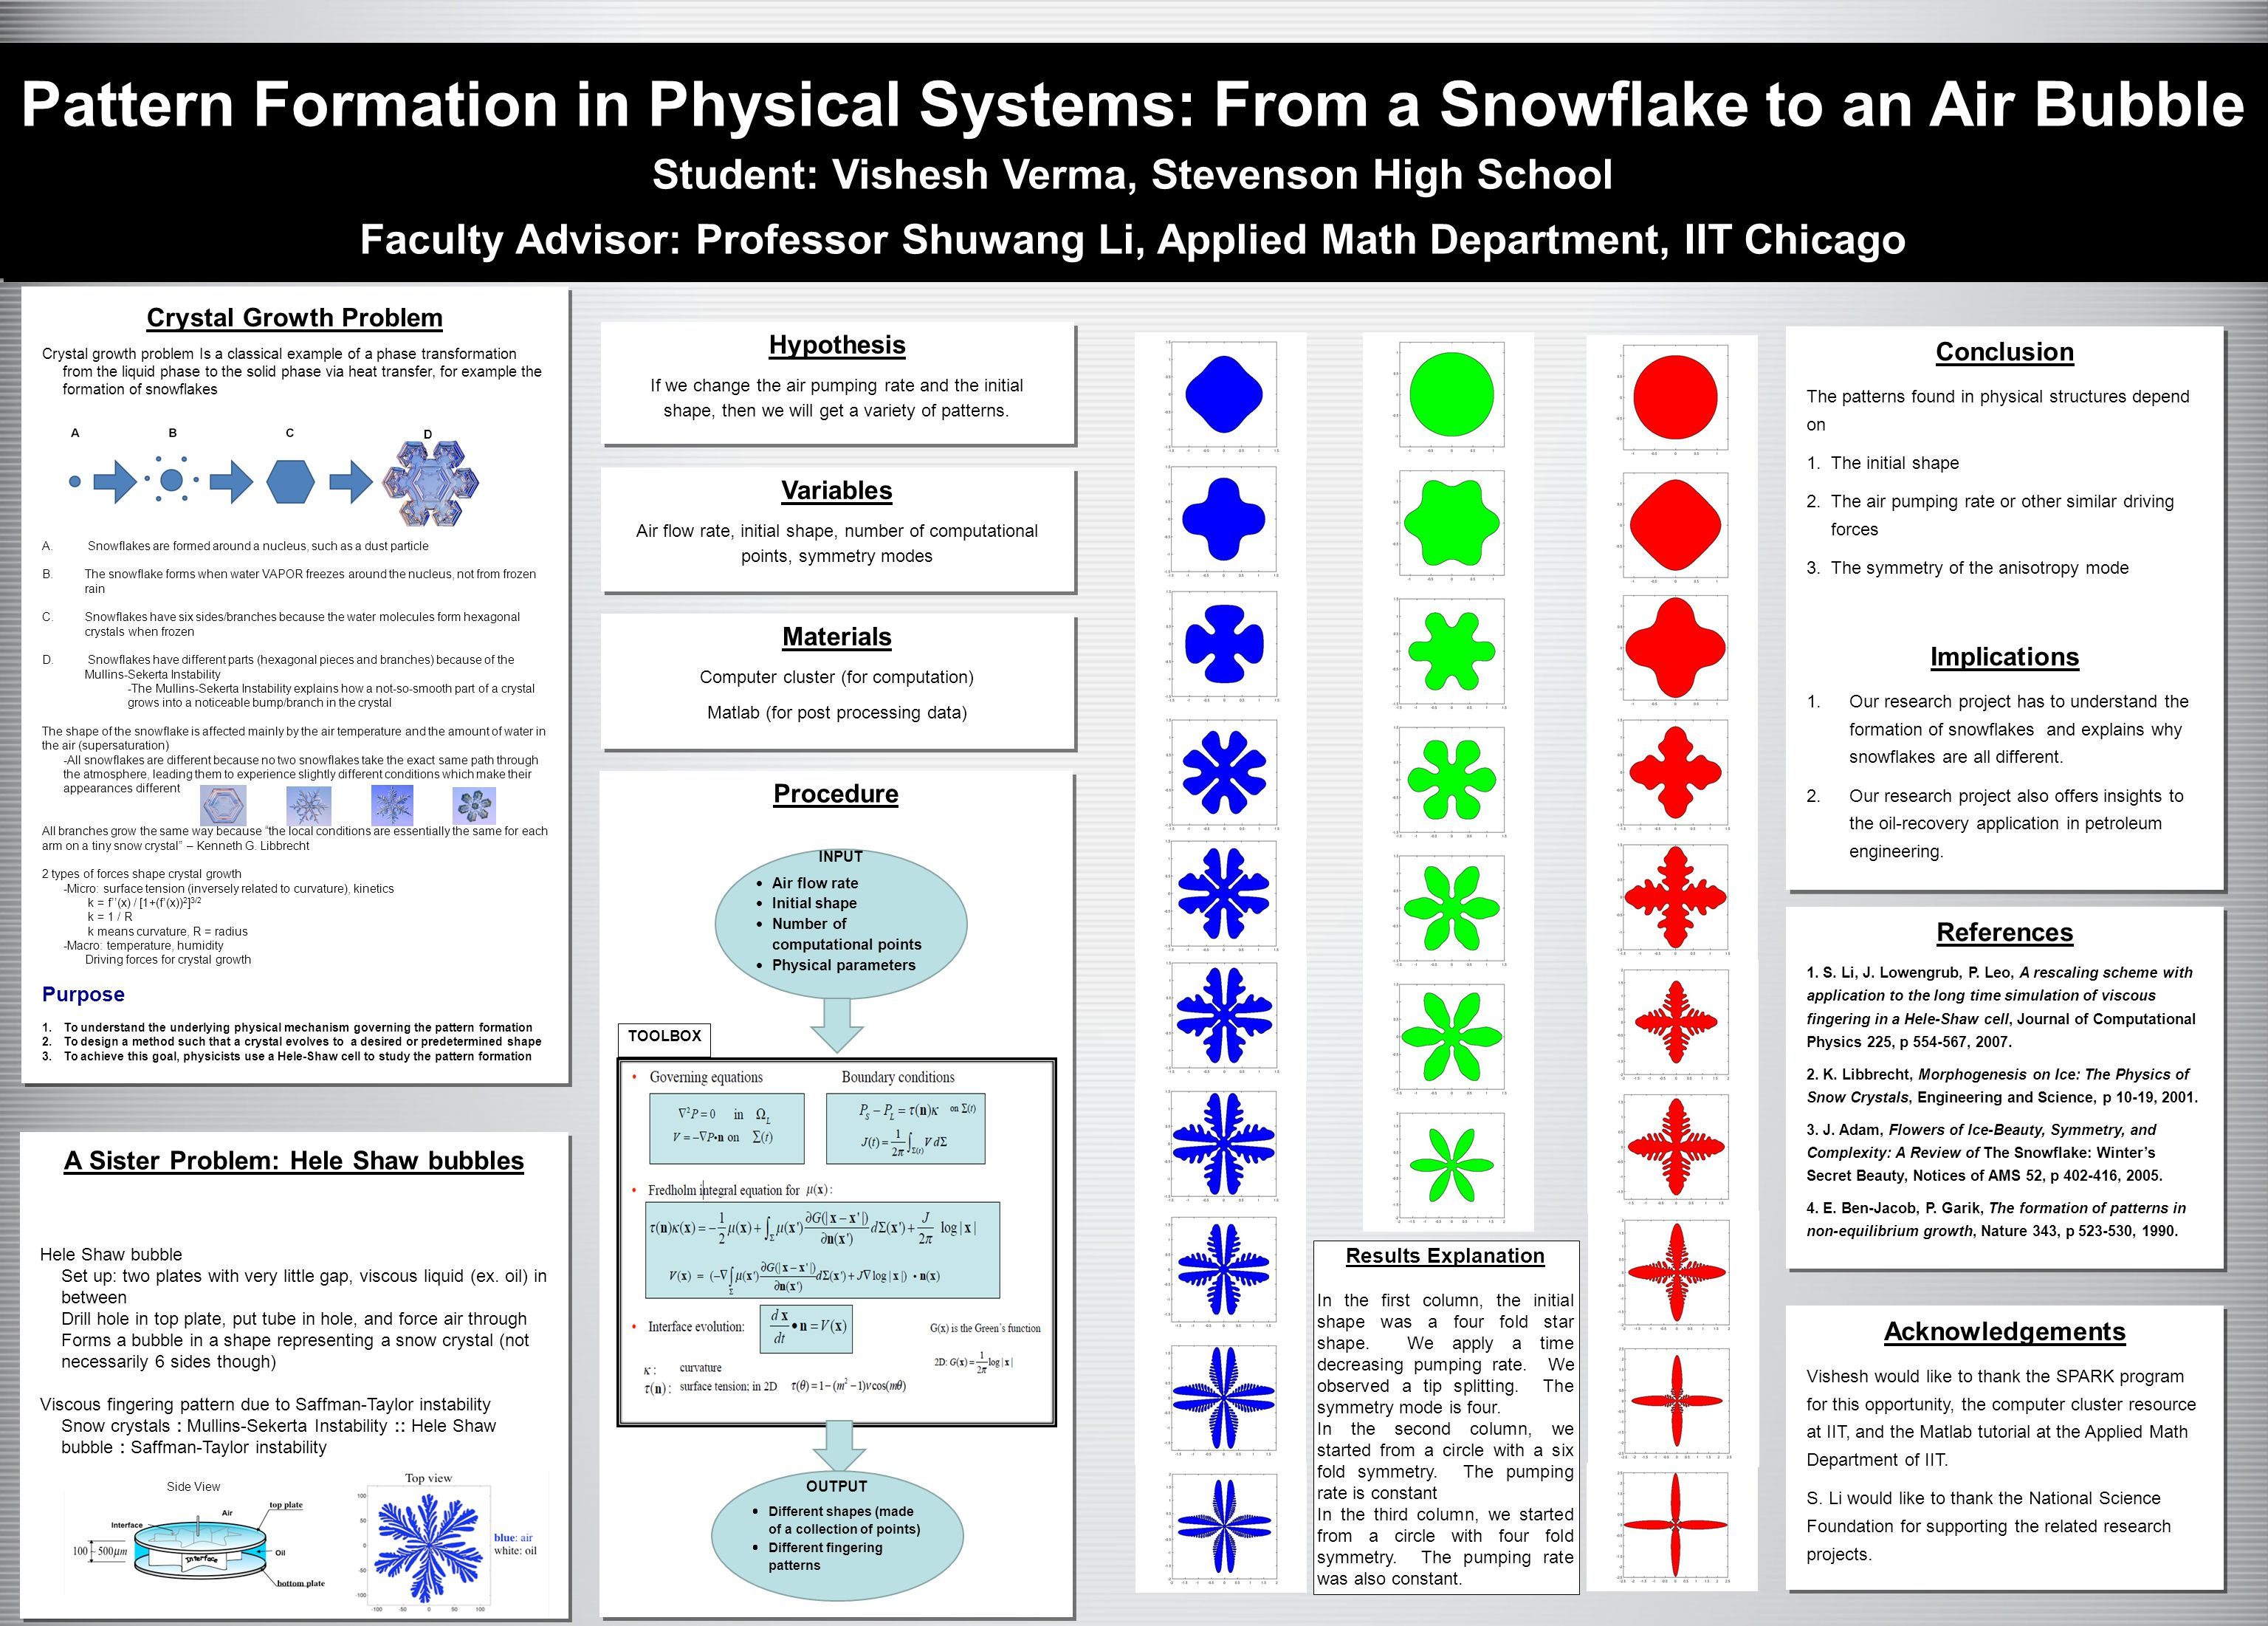 Pattern Formation in Physical Systems: From a Snowflake to an Air Bubble Student: Vishesh Verma, Stevenson High School Faculty Advisor: Professor Shuwang Li, Applied Math Department, IIT Chicago Pattern Formation in Physical Systems: From a Snowflake to an Air Bubble Student: Vishesh Verma, Stevenson High School Faculty Advisor: Professor Shuwang Li, Applied Math Department, IIT Chicago Crystal Growth Problem Crystal growth problem Is a classical example of a phase transformation from the liquid phase to the solid phase via heat transfer, for example the formation of snowflakes D A.